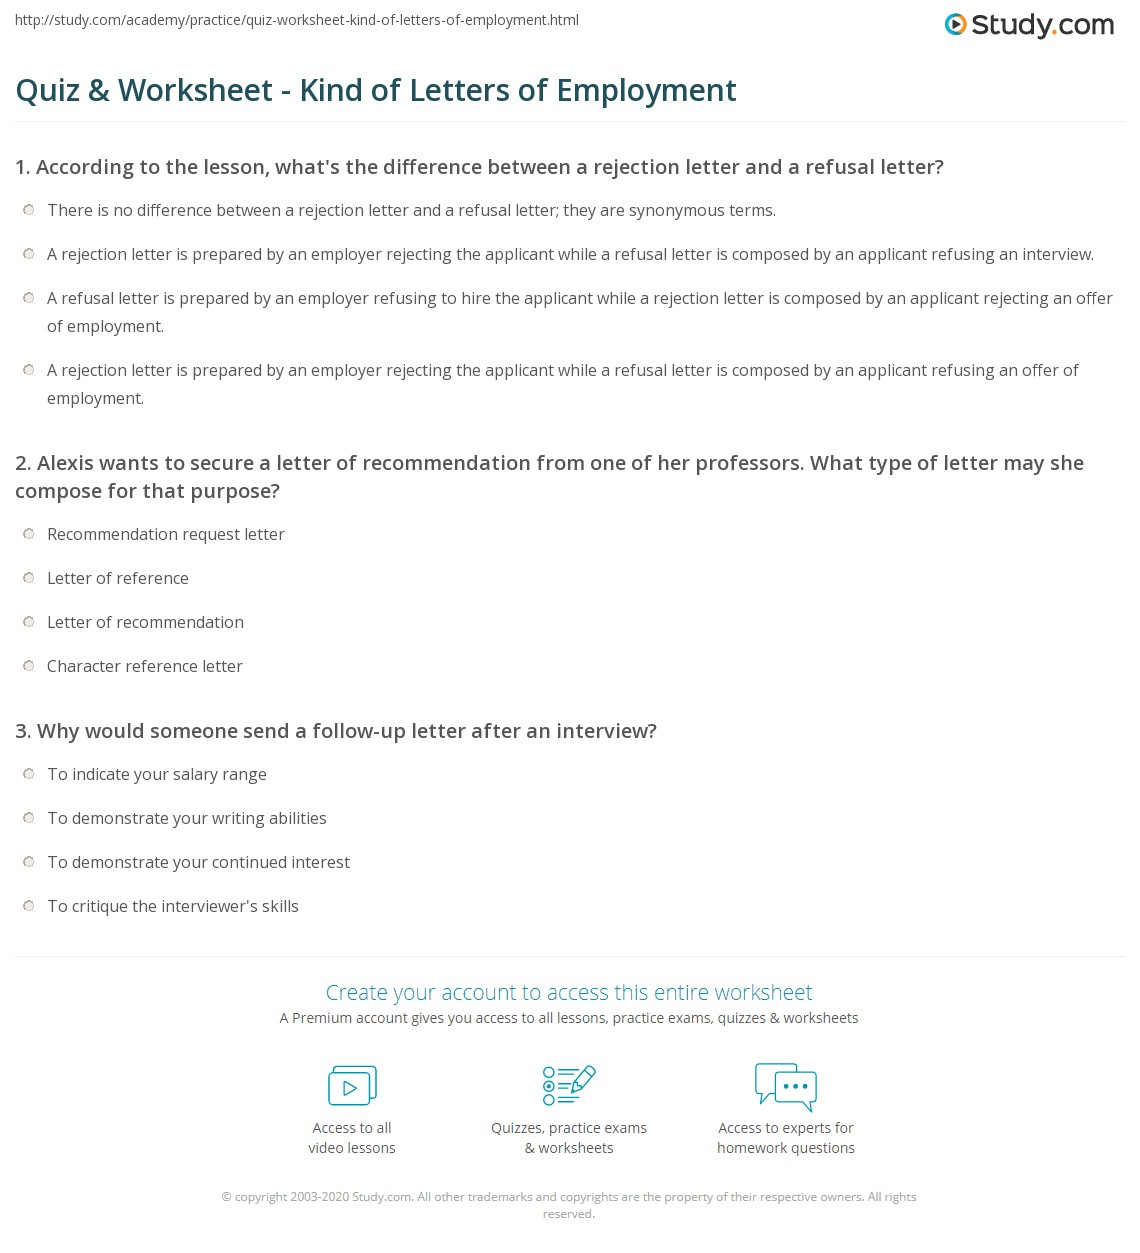 Quiz Worksheet Kind of Letters of Employment – Refusal Letter